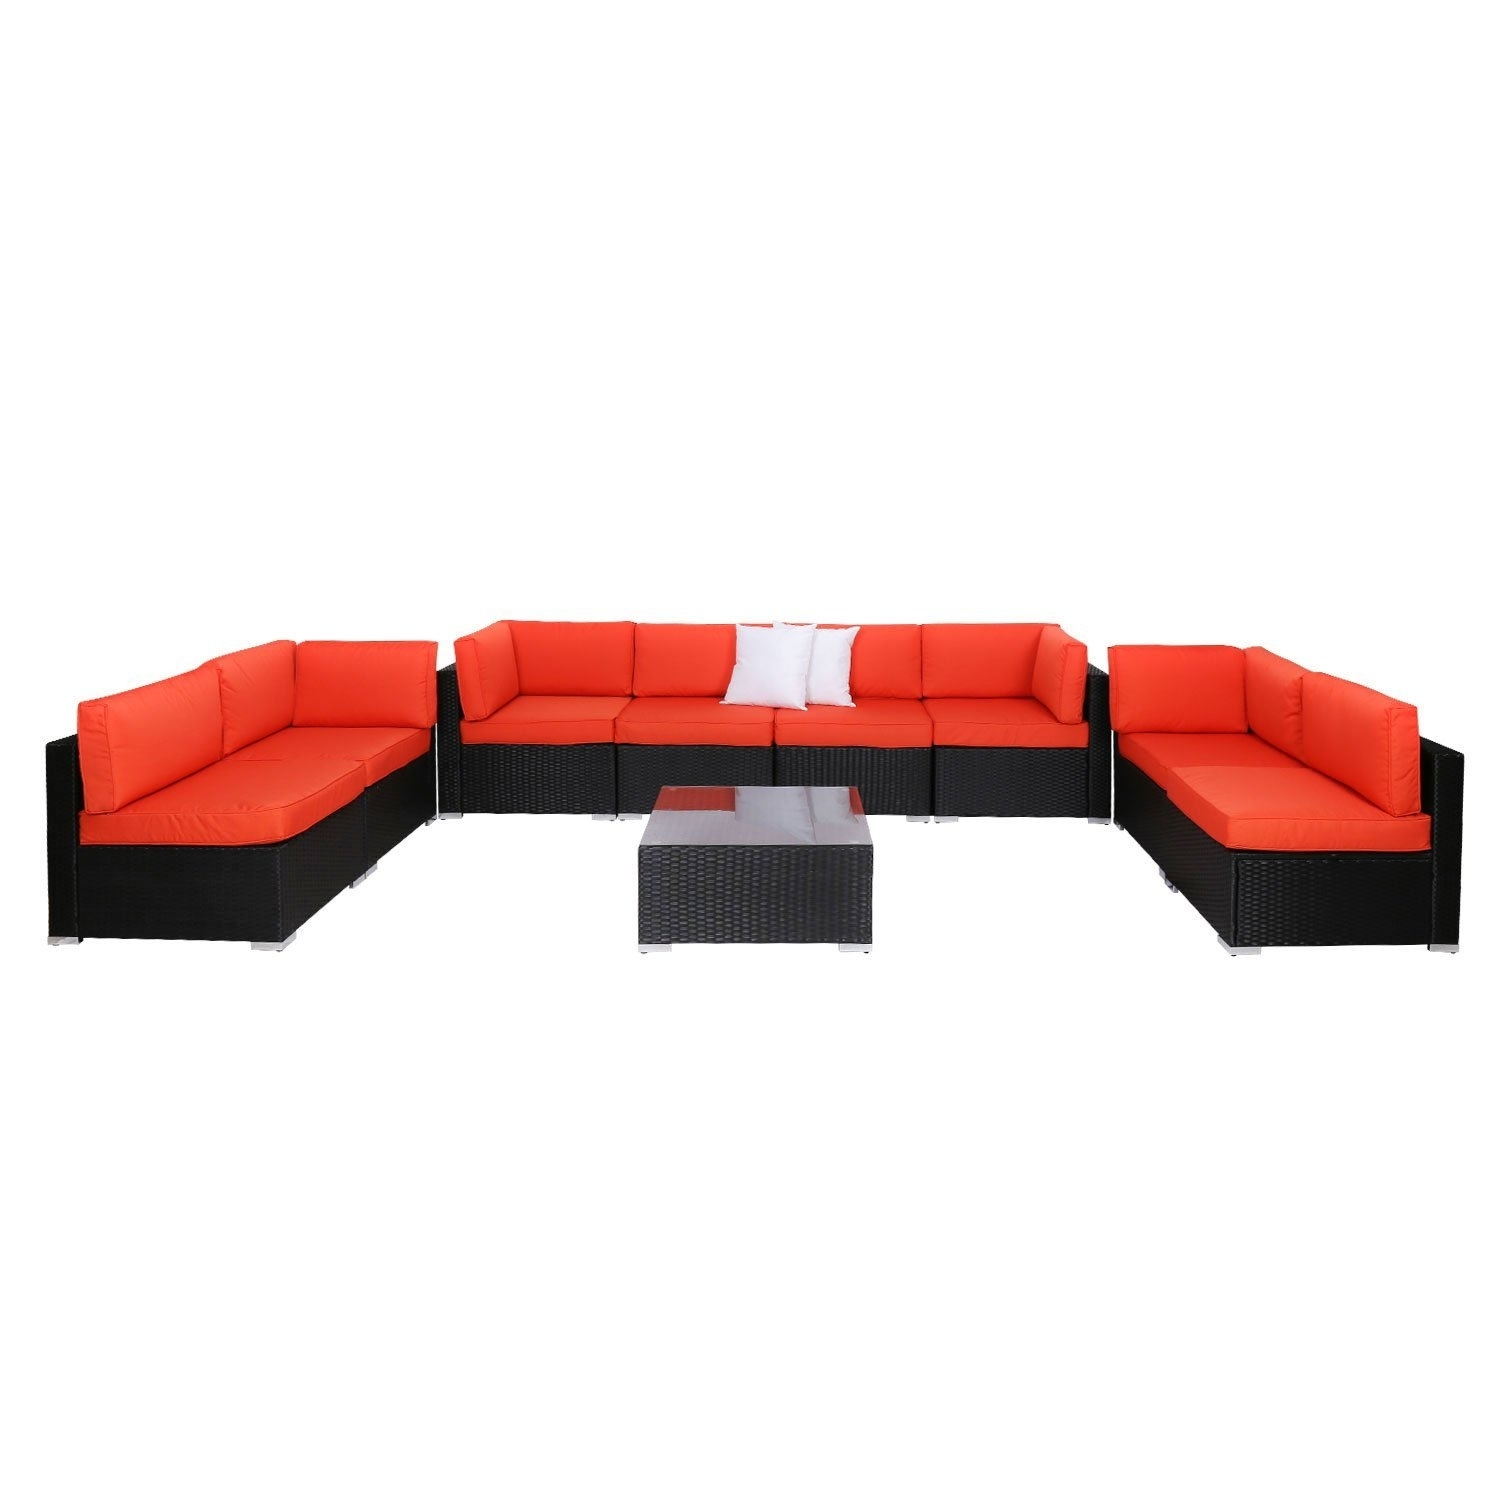 Cheap Ashley Furniture Sectional Sofas, Find Ashley Furniture Throughout Delano 2 Piece Sectionals With Laf Oversized Chaise (View 17 of 30)